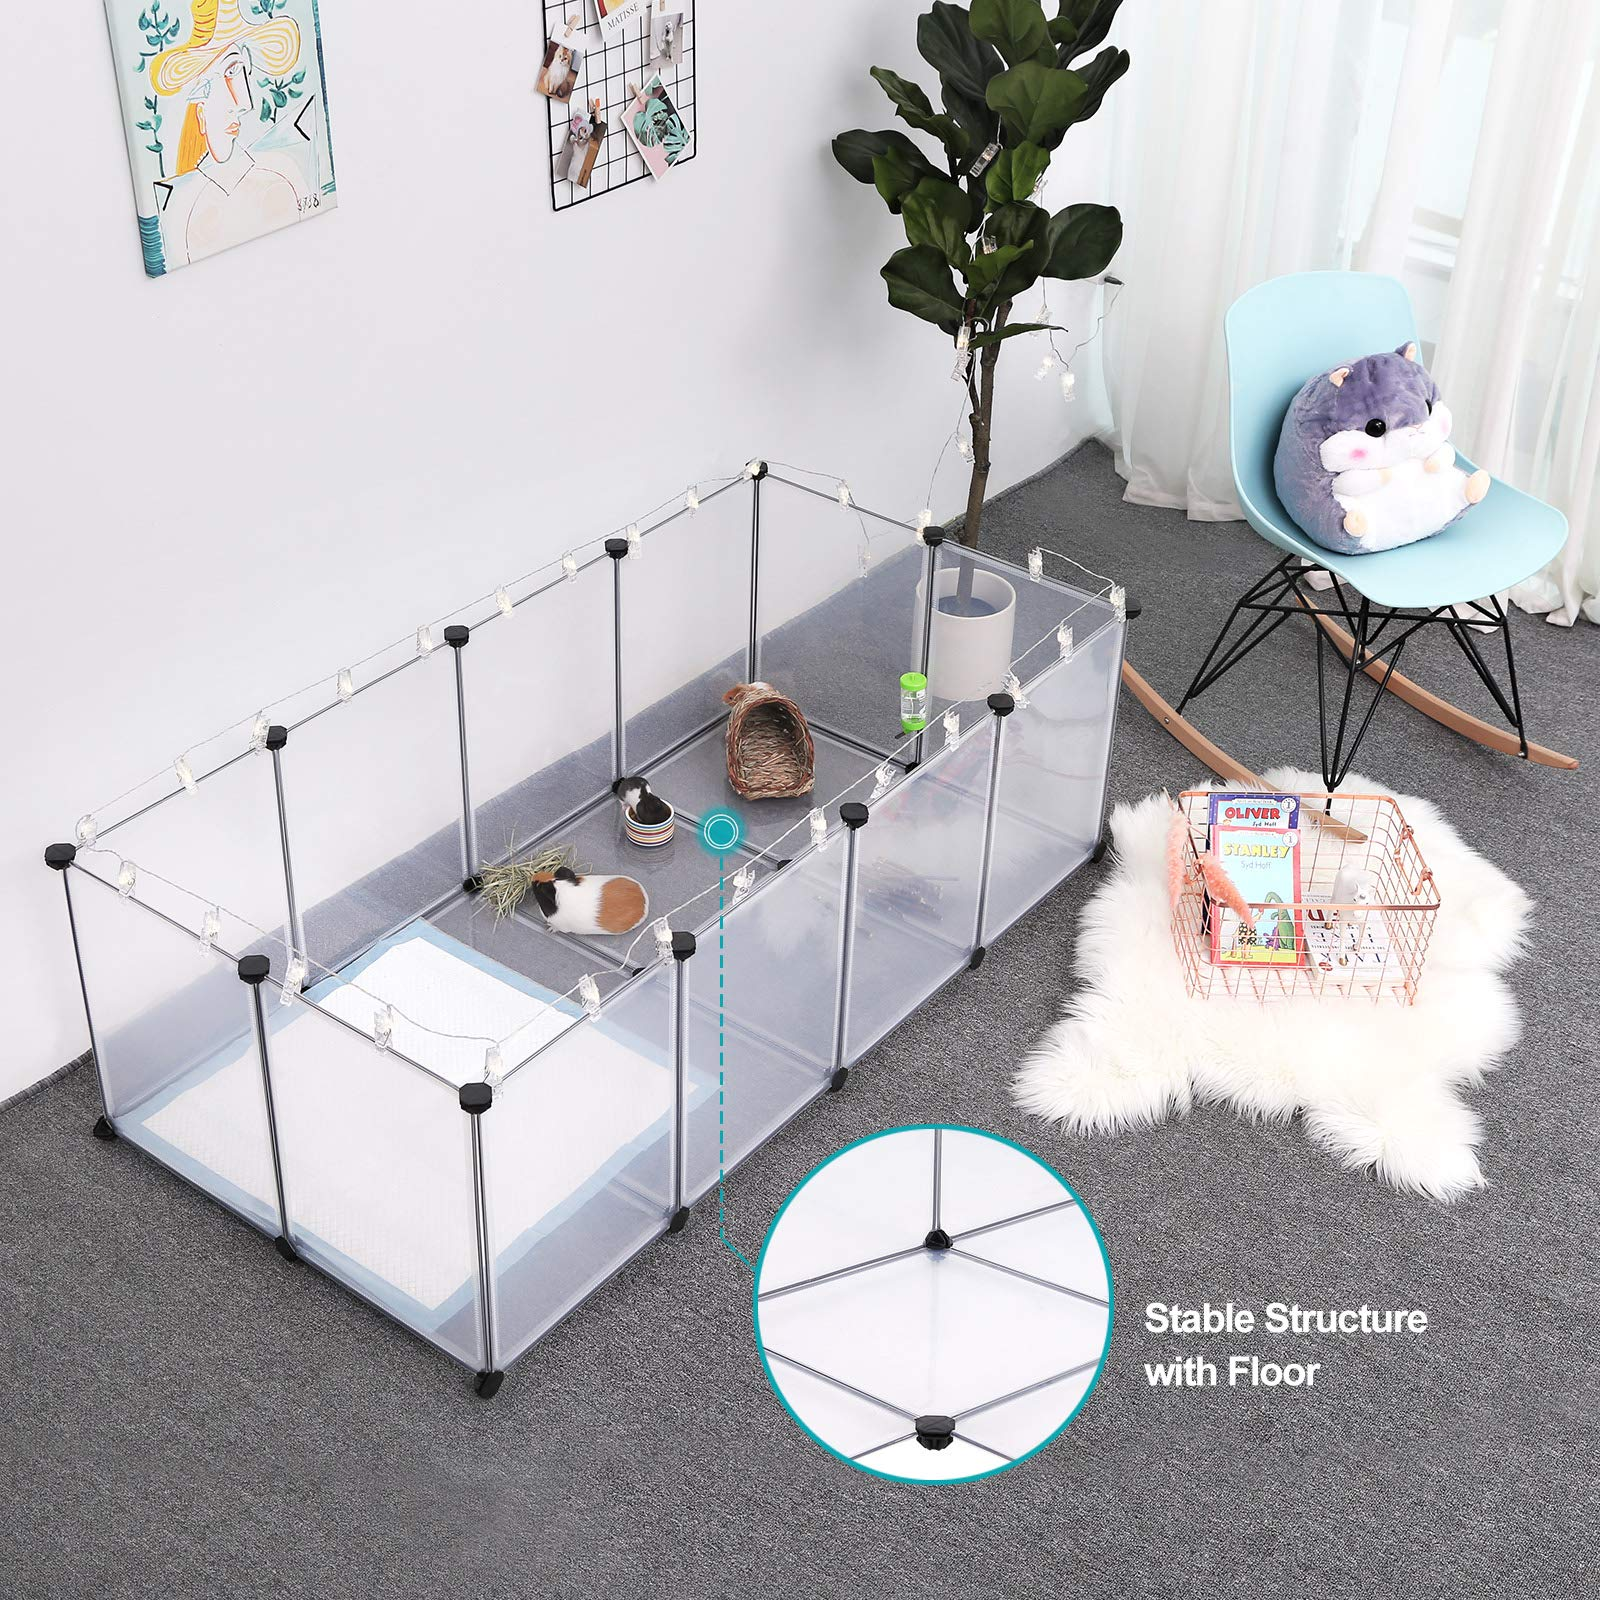 SONGMICS Pet Playpen,Fence Cage with Bottom for Small Animals Guinea Pigs, Hamsters, Bunnies,Rabbits, Pet Exercise Run and Crate, Transparent Plastic Panels, ULPC02W by SONGMICS (Image #3)